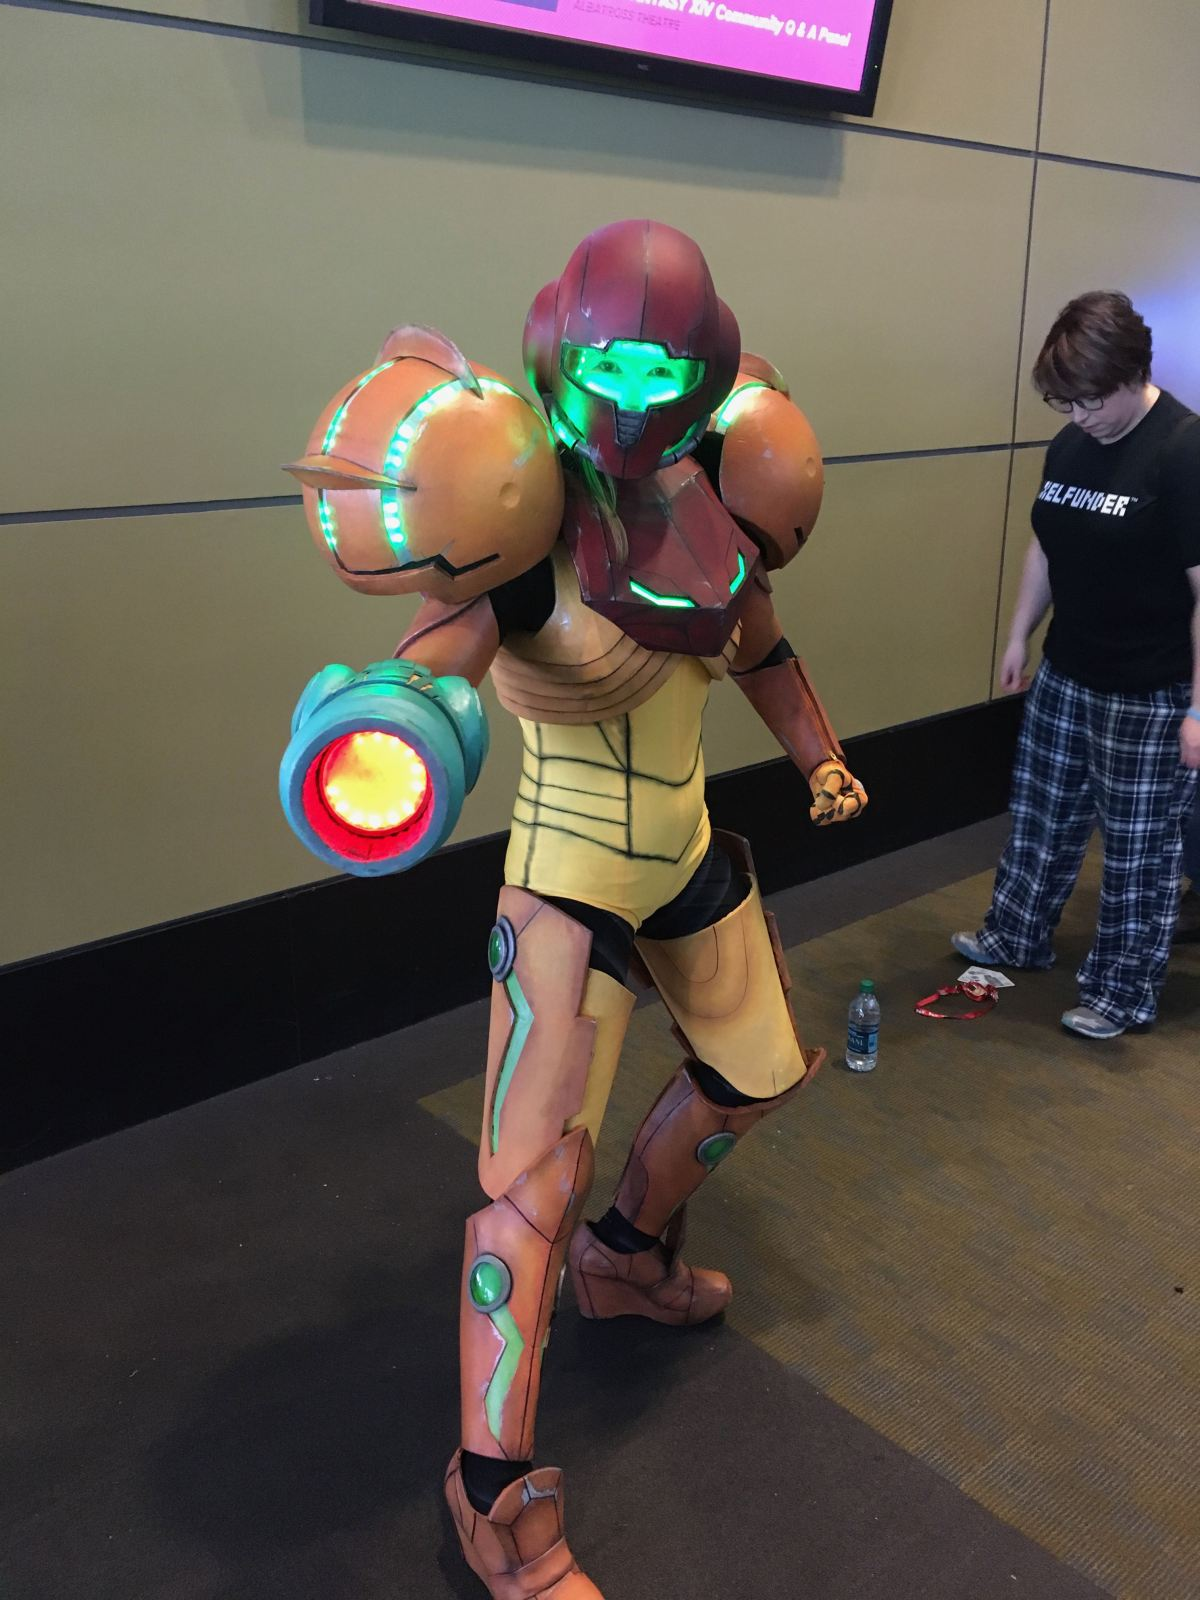 Great cosplay